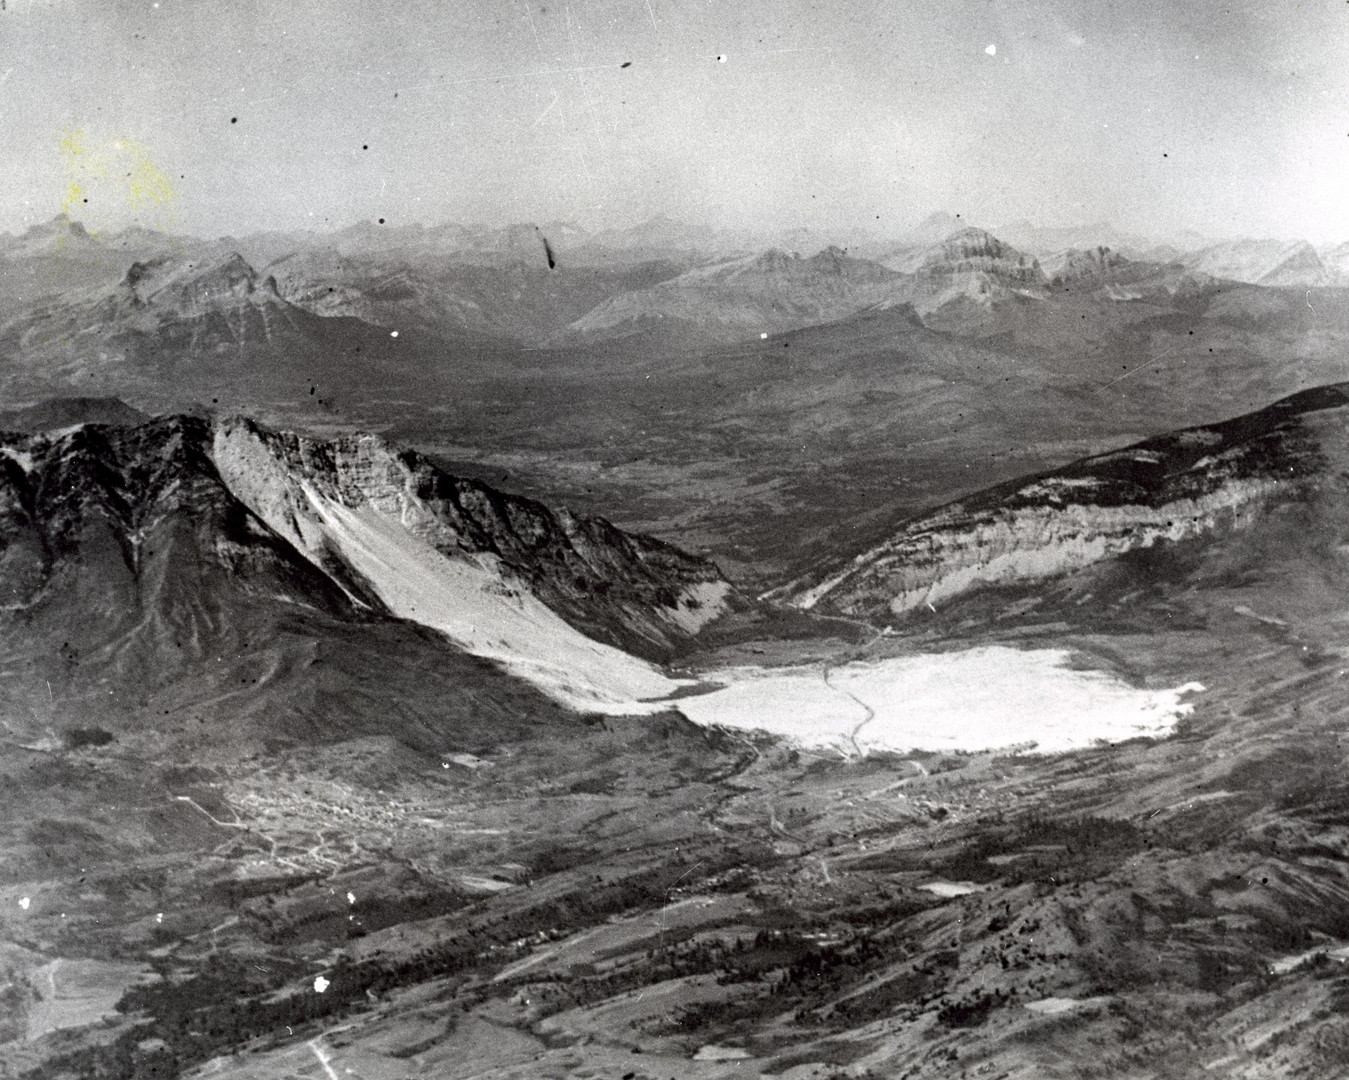 Aerial View of Frank Slide - UNKNOWN August 1922